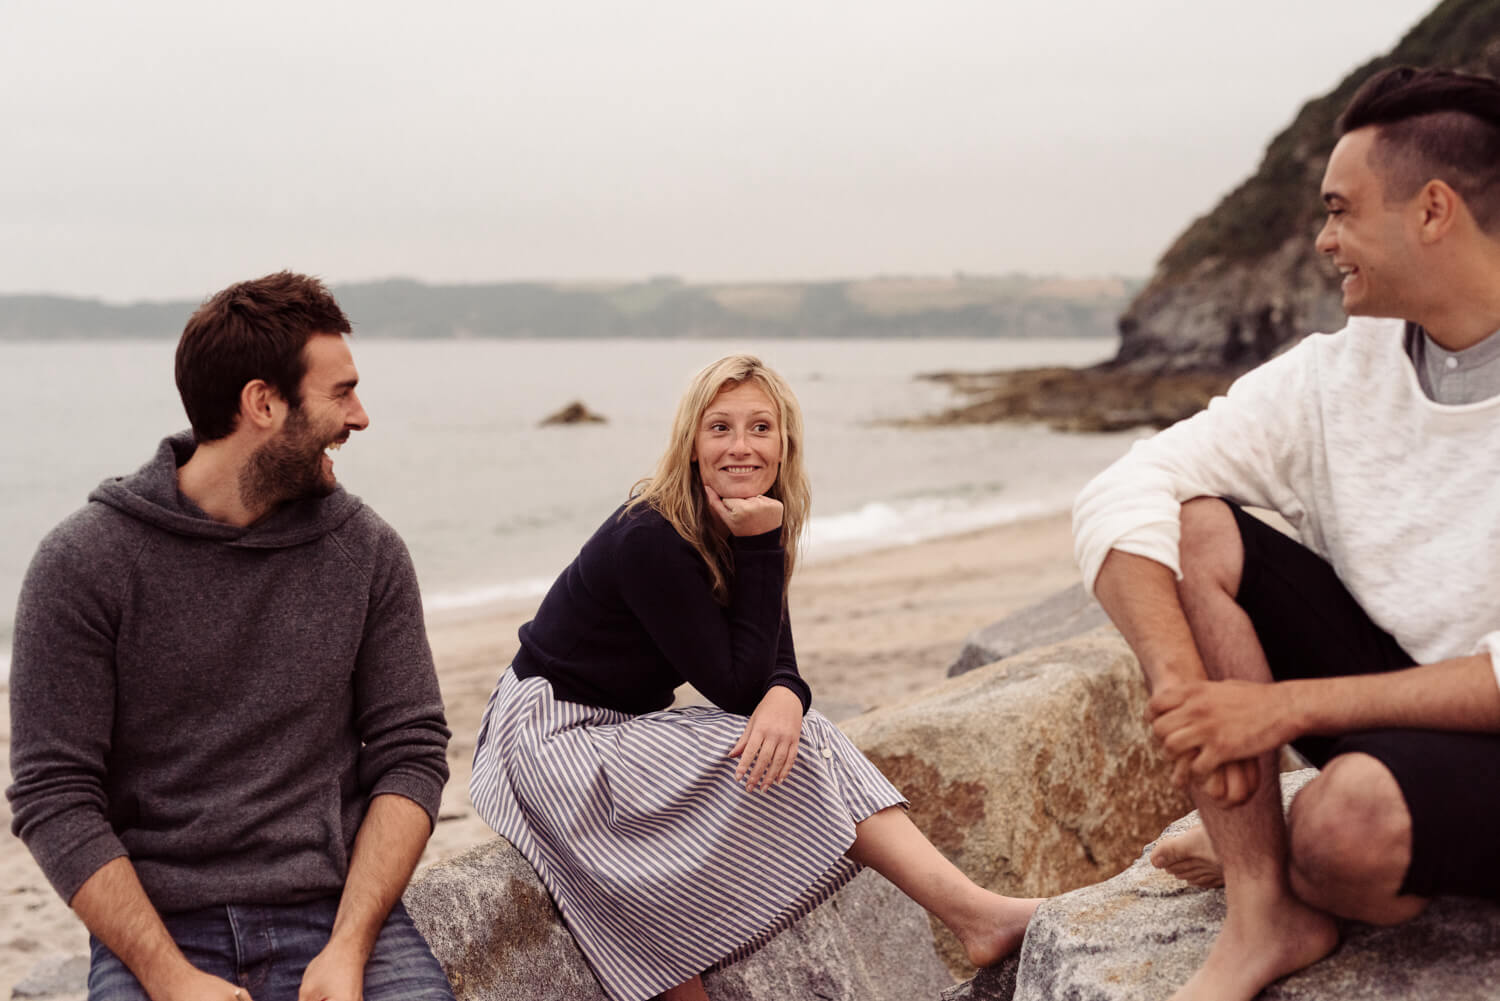 friends, by the sea on a grey day lifestyle photographer Tim Cole